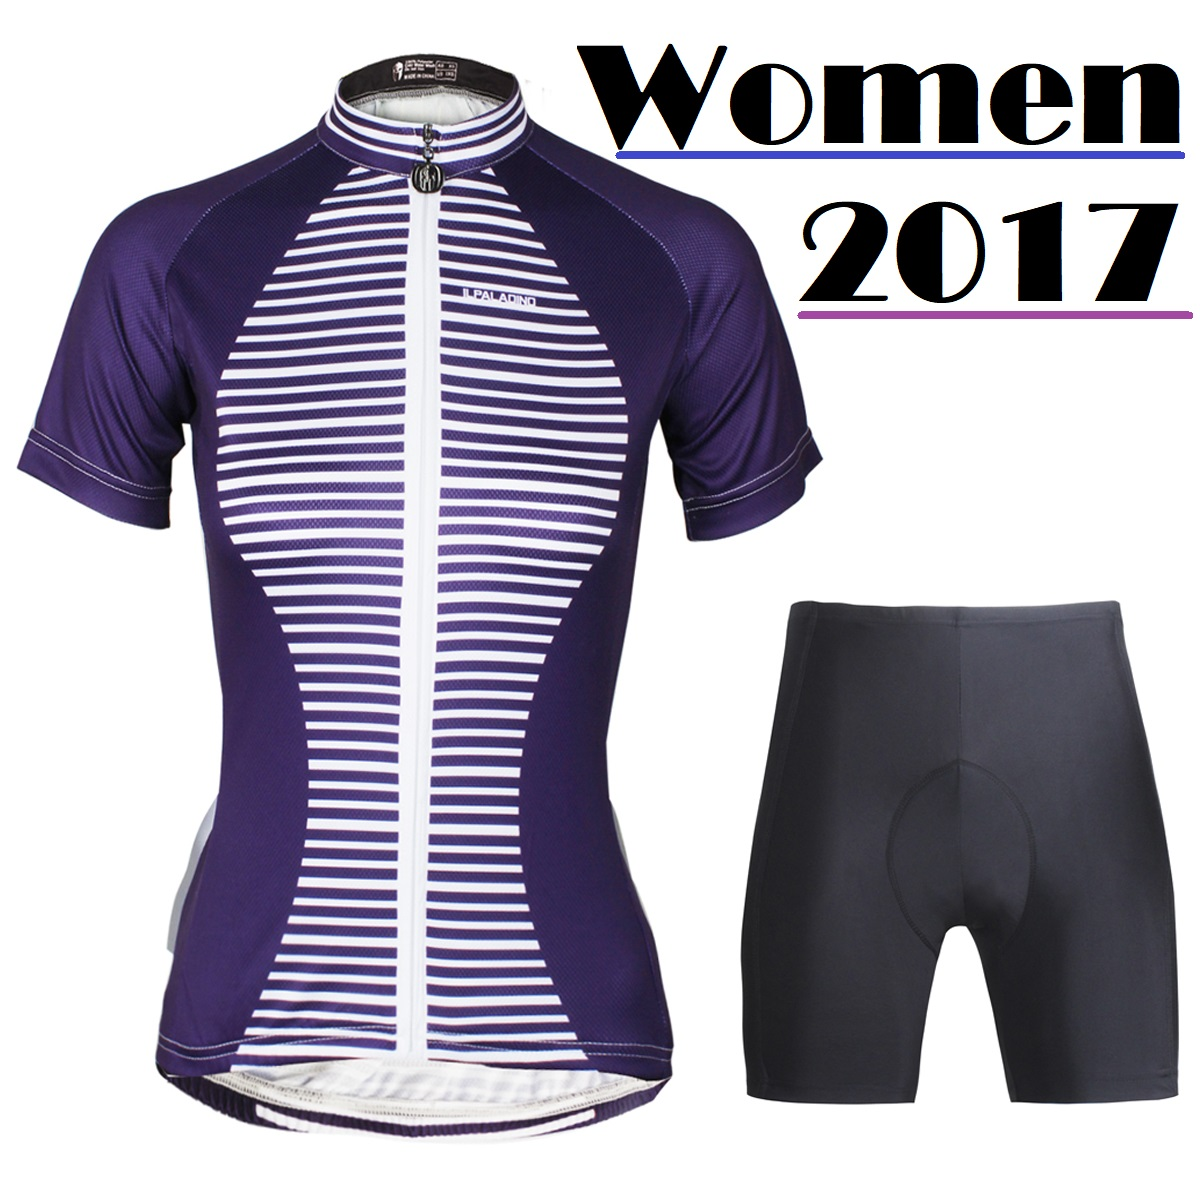 Women's Sports Jerseys Summer Cycling Sportwear Racing Jersey Female Bicycle Clothing Free Shipping ILPALADINO QI17DT755 176 hot cycling jerseys magnolia flowers hot cycling jersey 2017s anti pilling female adequate quality sleeve cycling clothing f